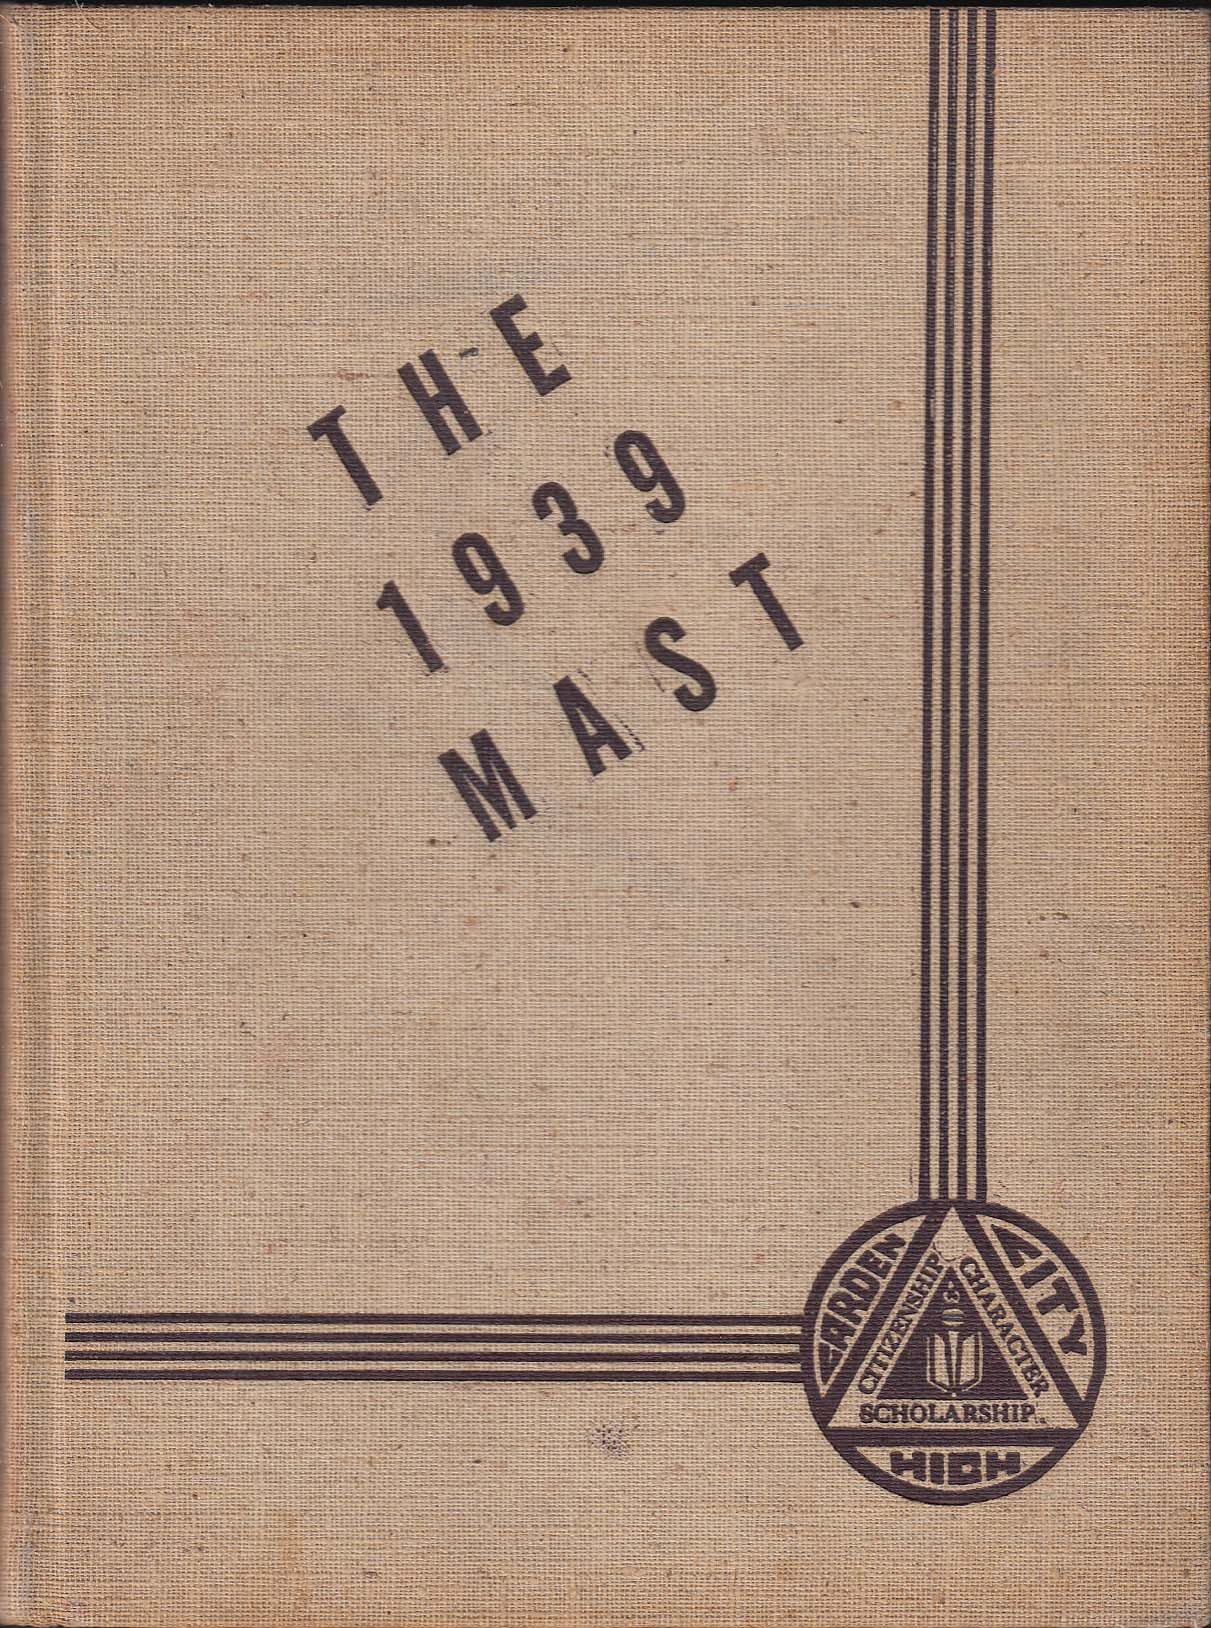 1939 Mast Yearbook Garden City High School Garden City New York